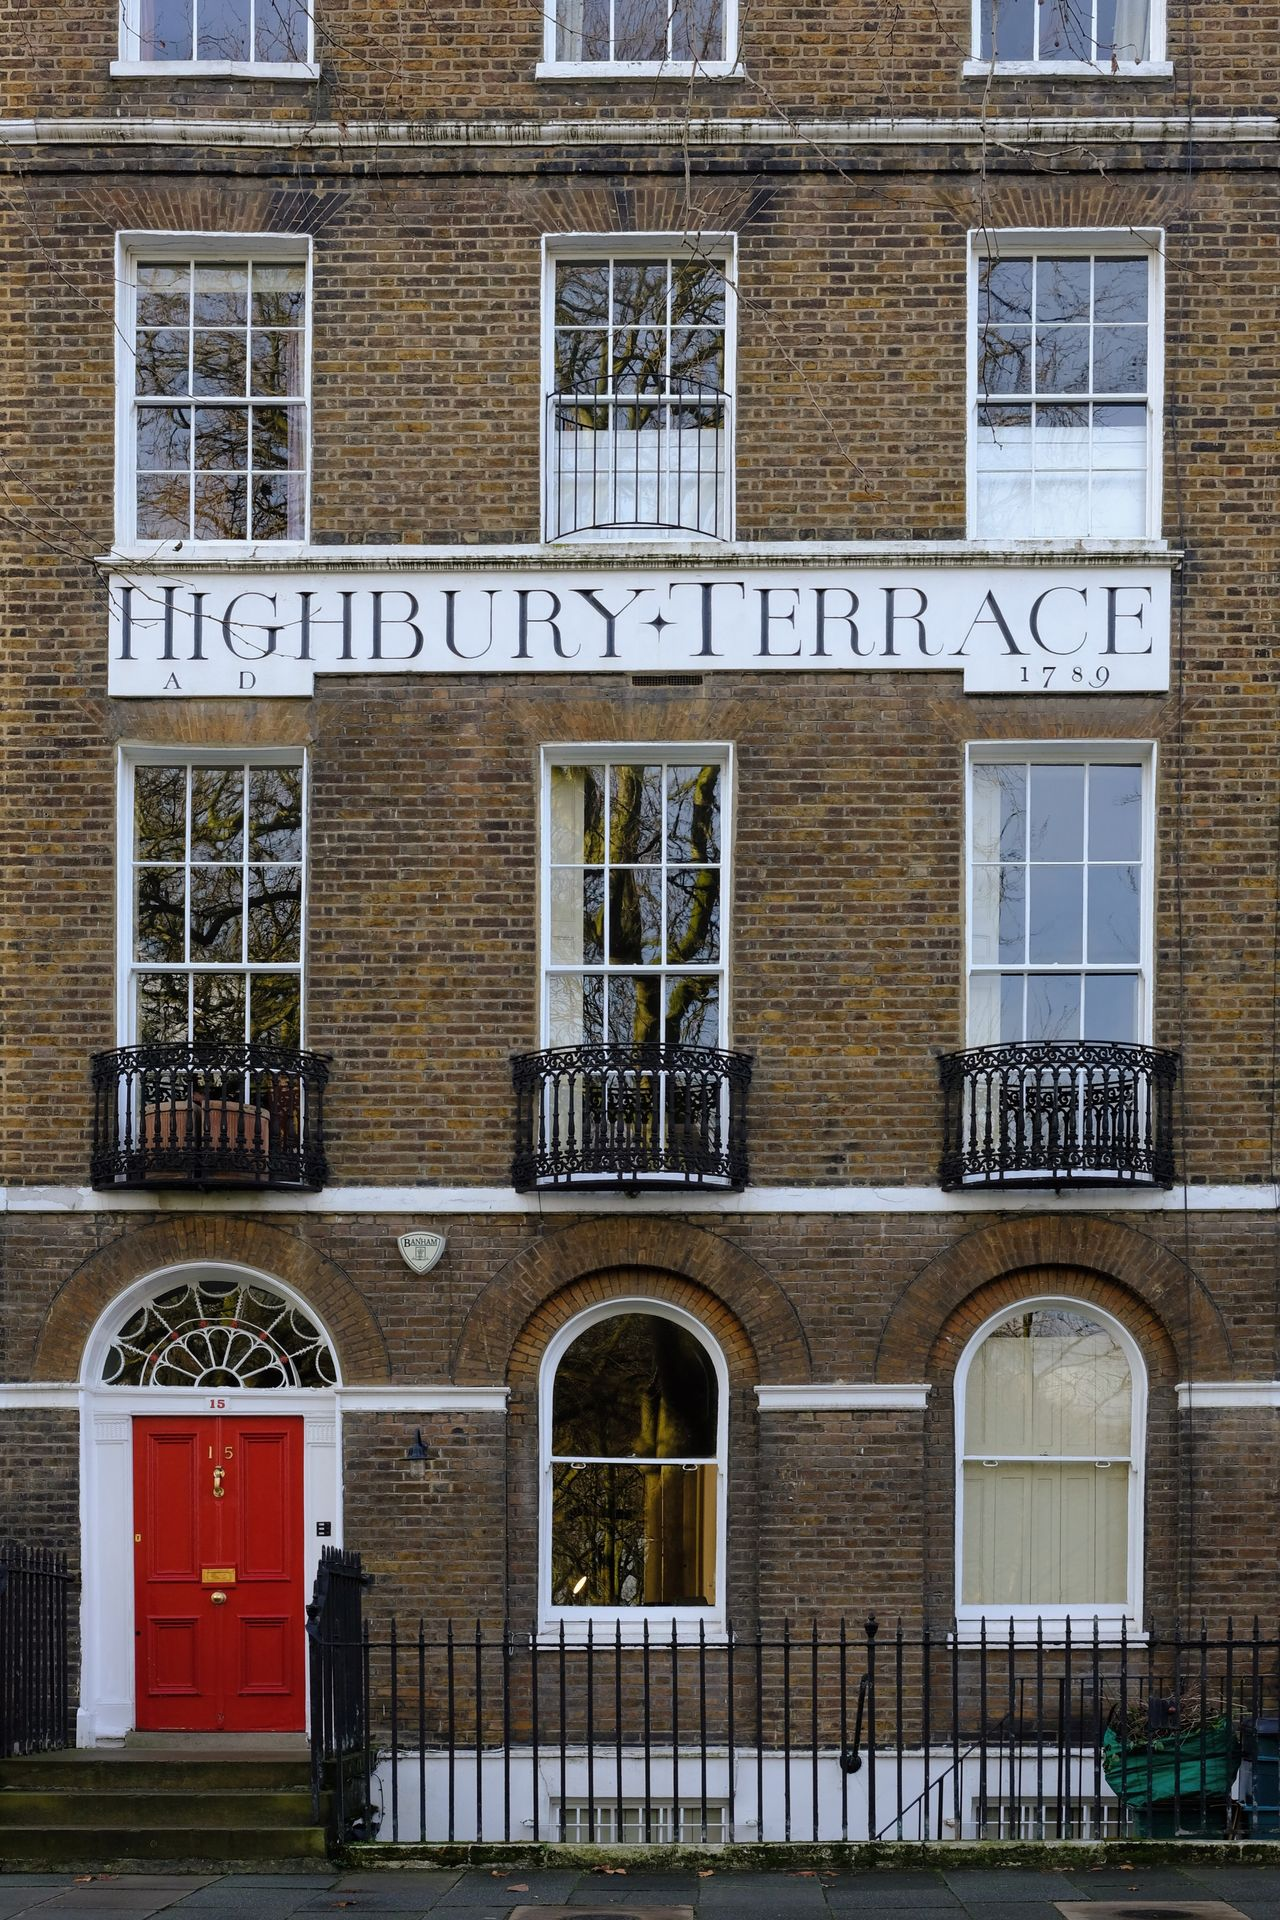 Building Exterior Architecture Built Structure Window Text No People Façade Outdoors Day Brick Wall Brick Building Architectural Feature Windows Urban Low Angle View Full Length Street Photography City Townhouse EyeEm Gallery Check This Out Popular Photos in Highbury & Islington London , United Kingdom